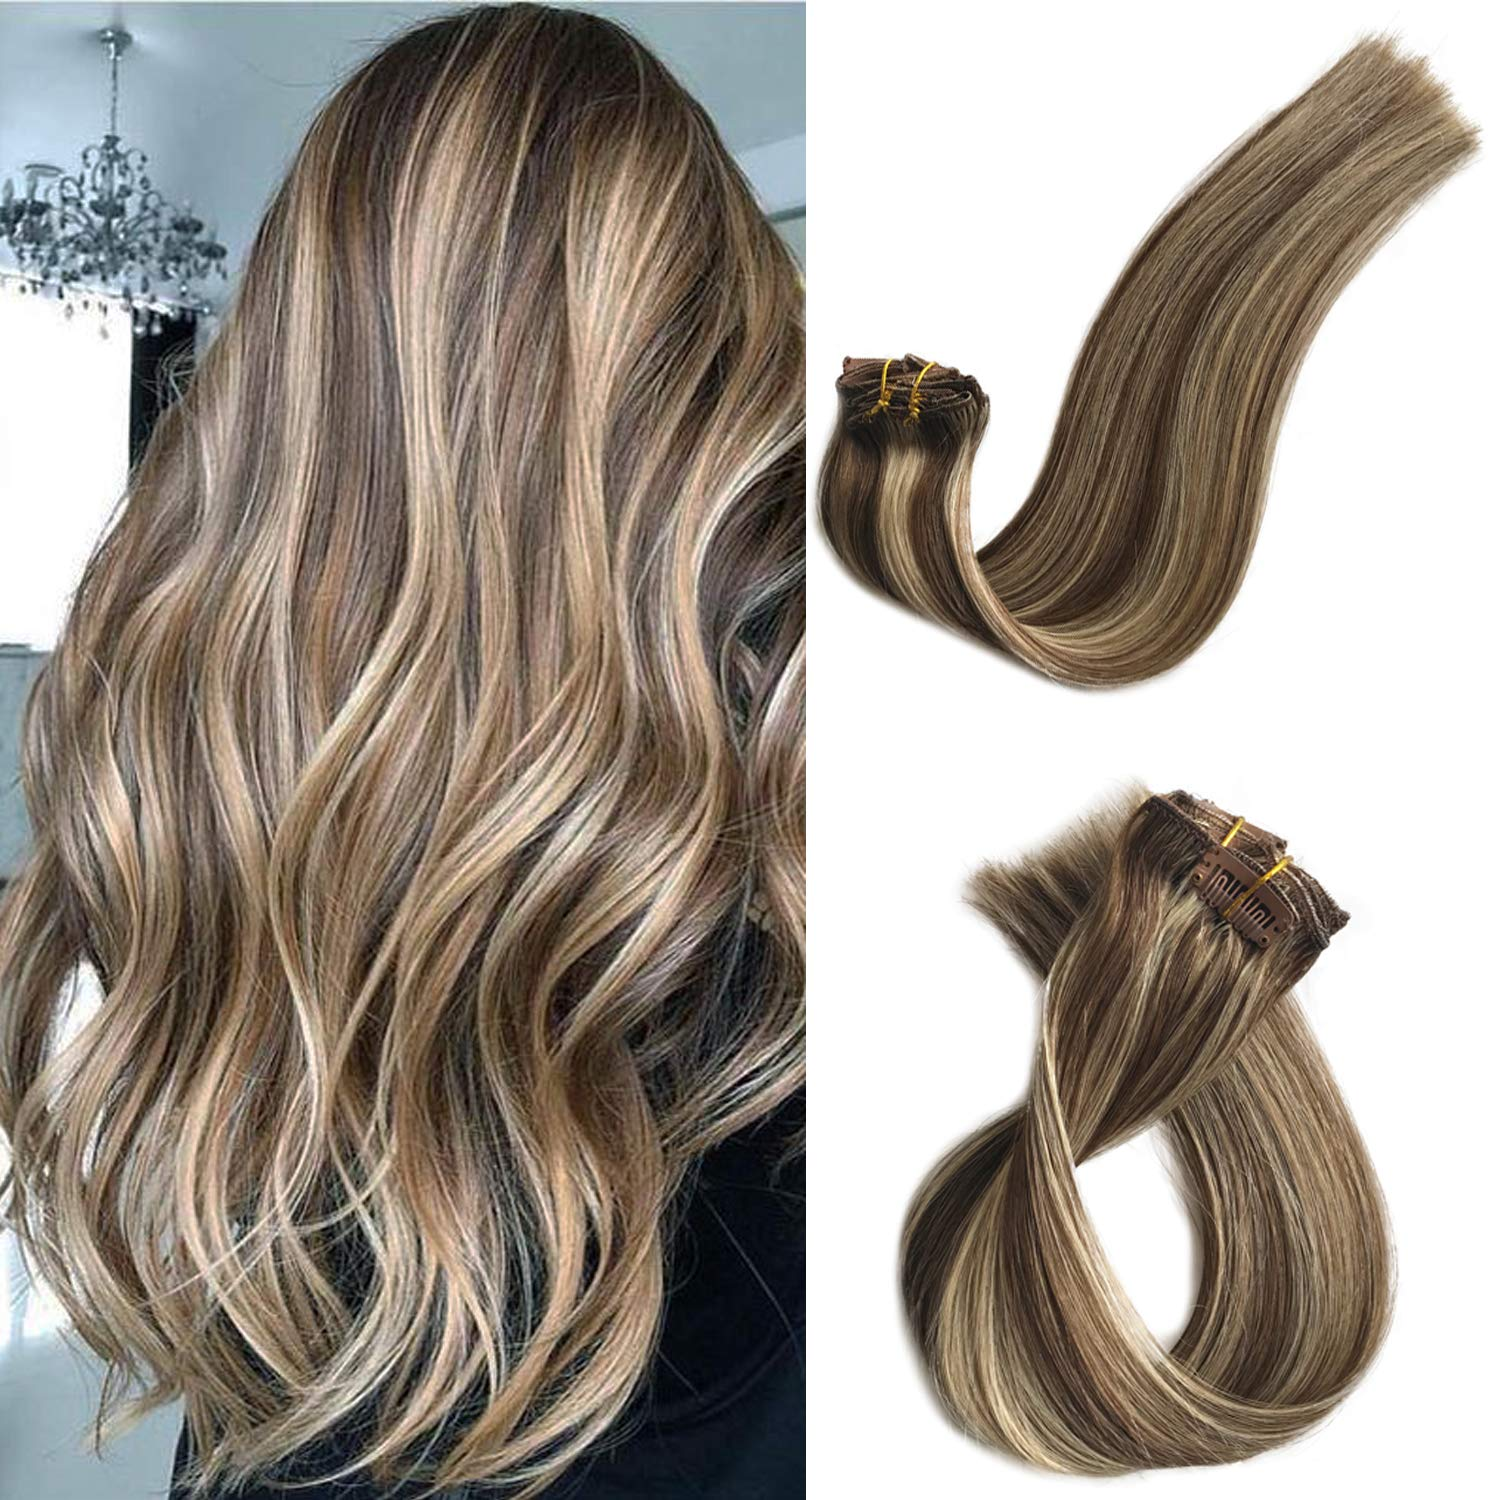 Clip in Real Human Hair Extensions Blonde Highlights Clip on Remy Hair Extensions for Black/White Women Medium Brown with 613 Bleach Blonde Highlights Double Weft Full Head 70g 7pcs 16 Clips 15 Inch